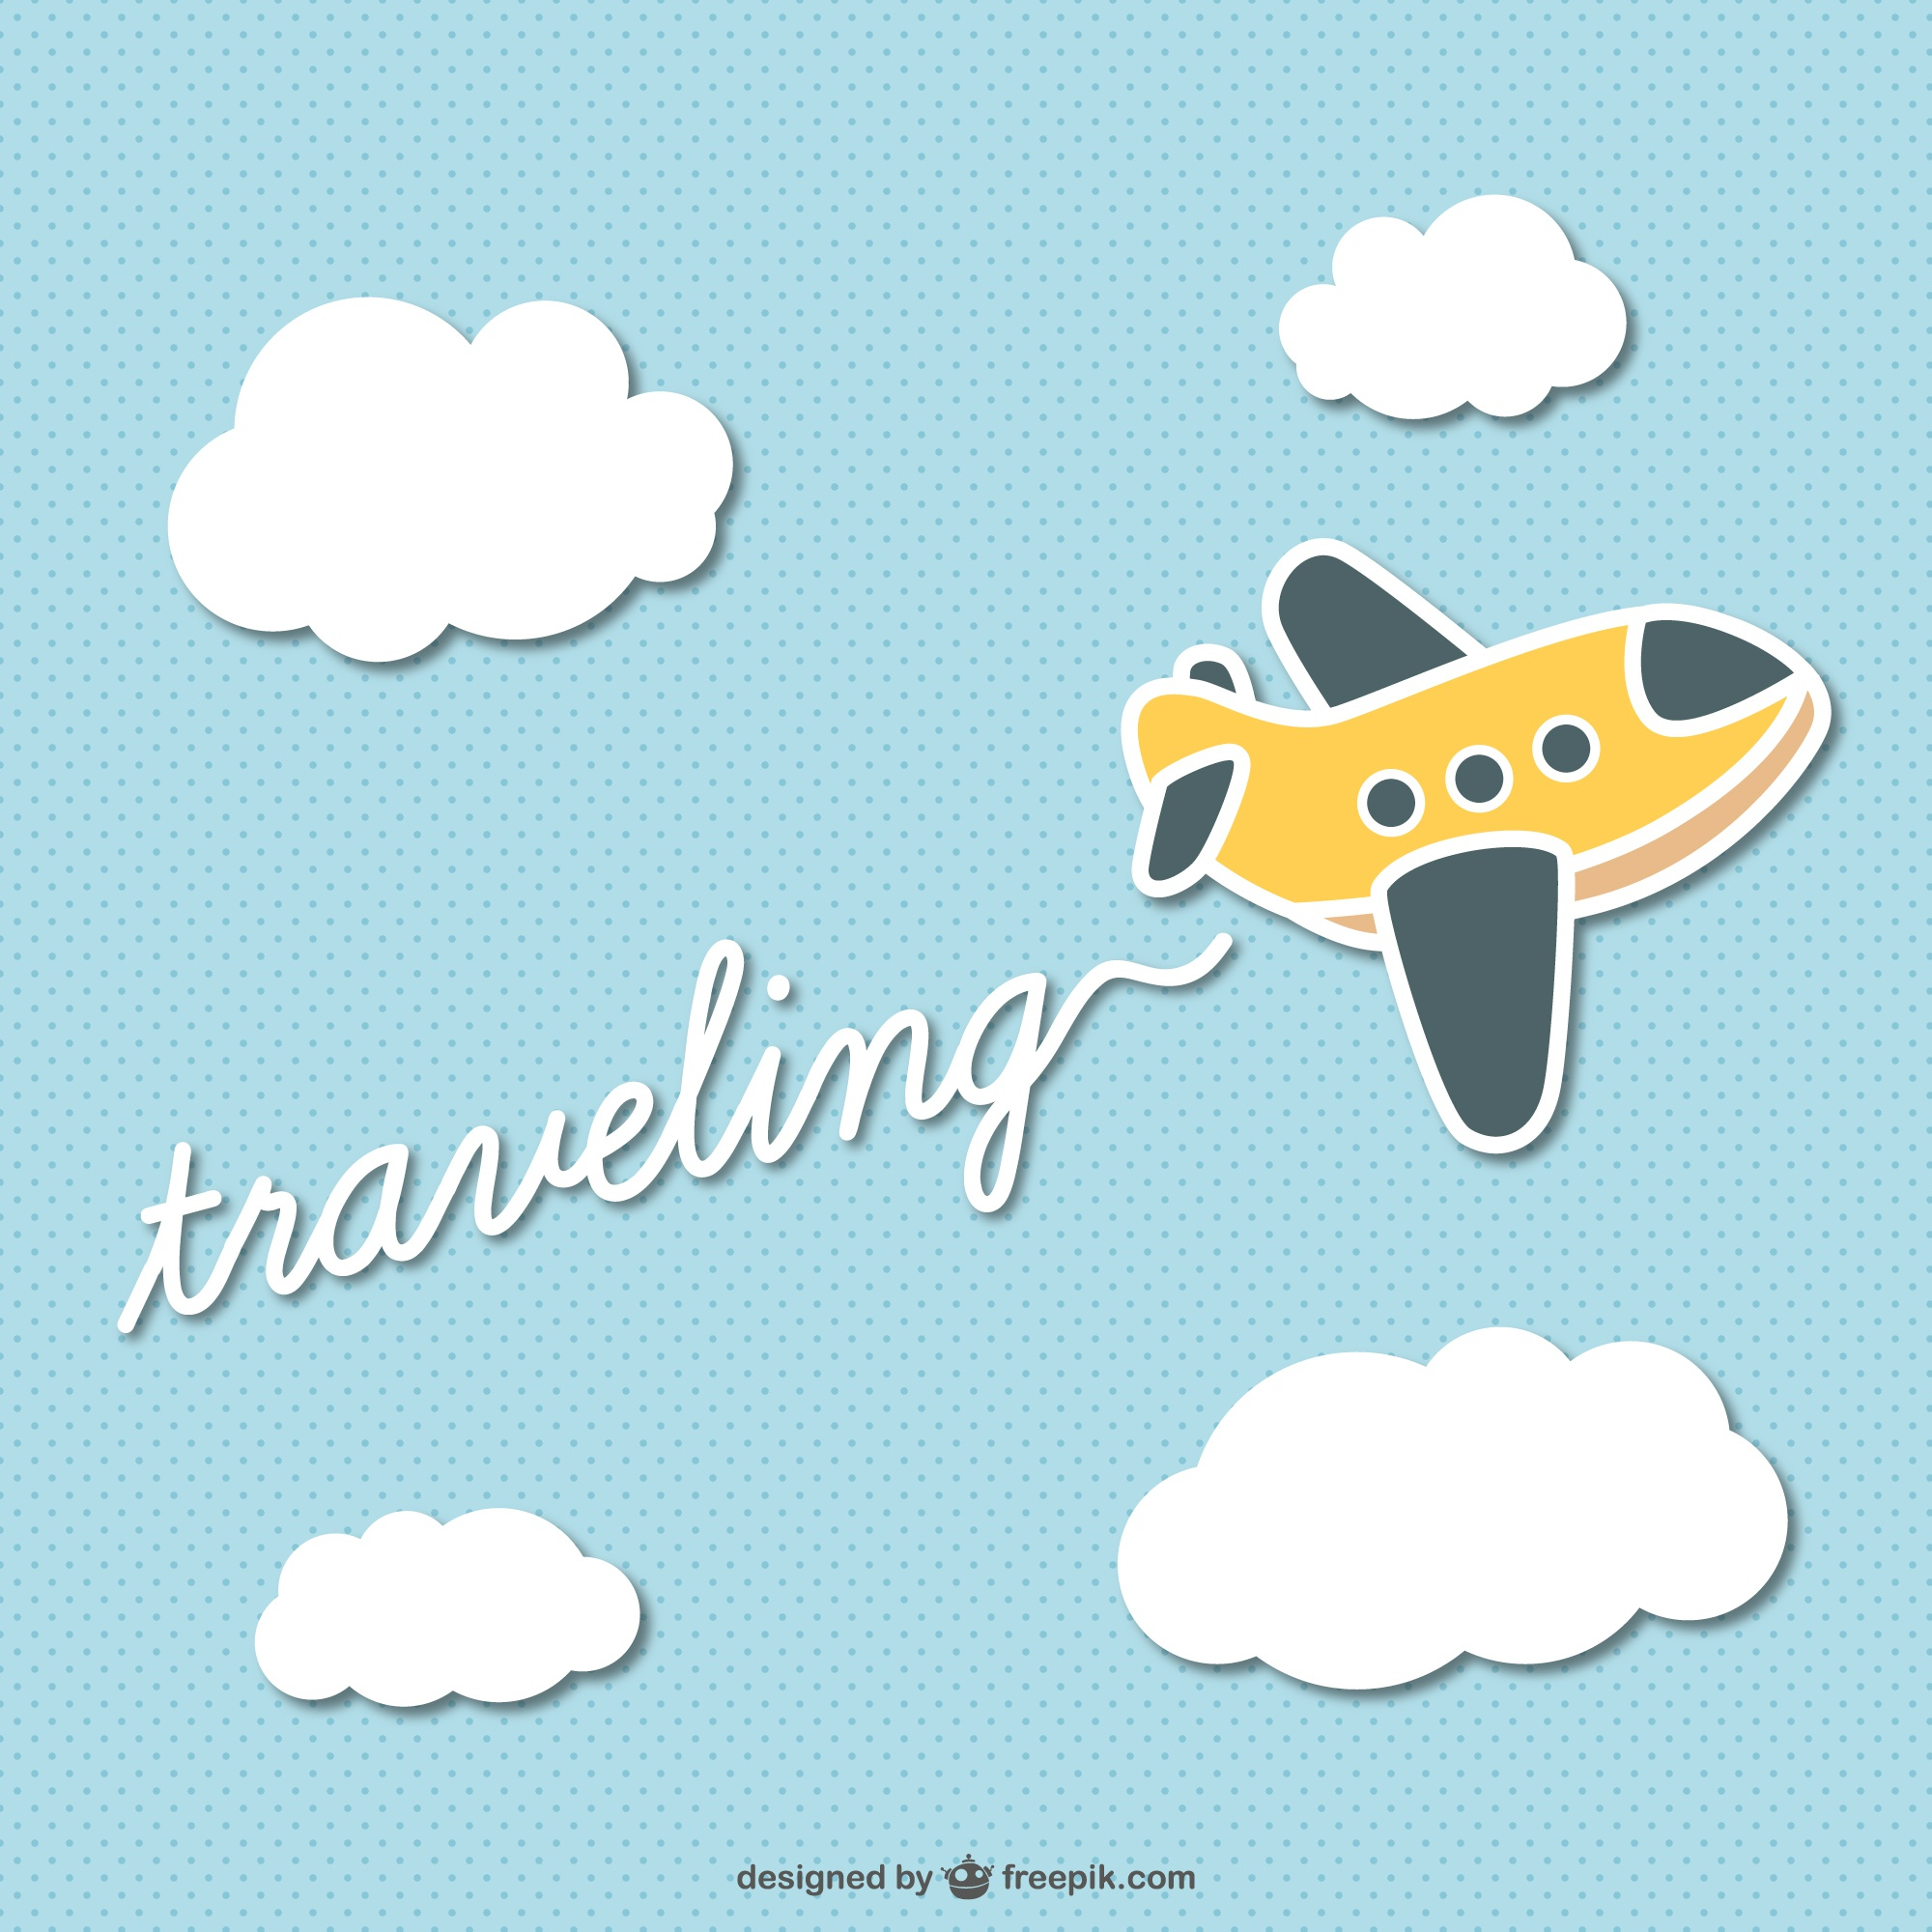 Traveling cartoon plane vector